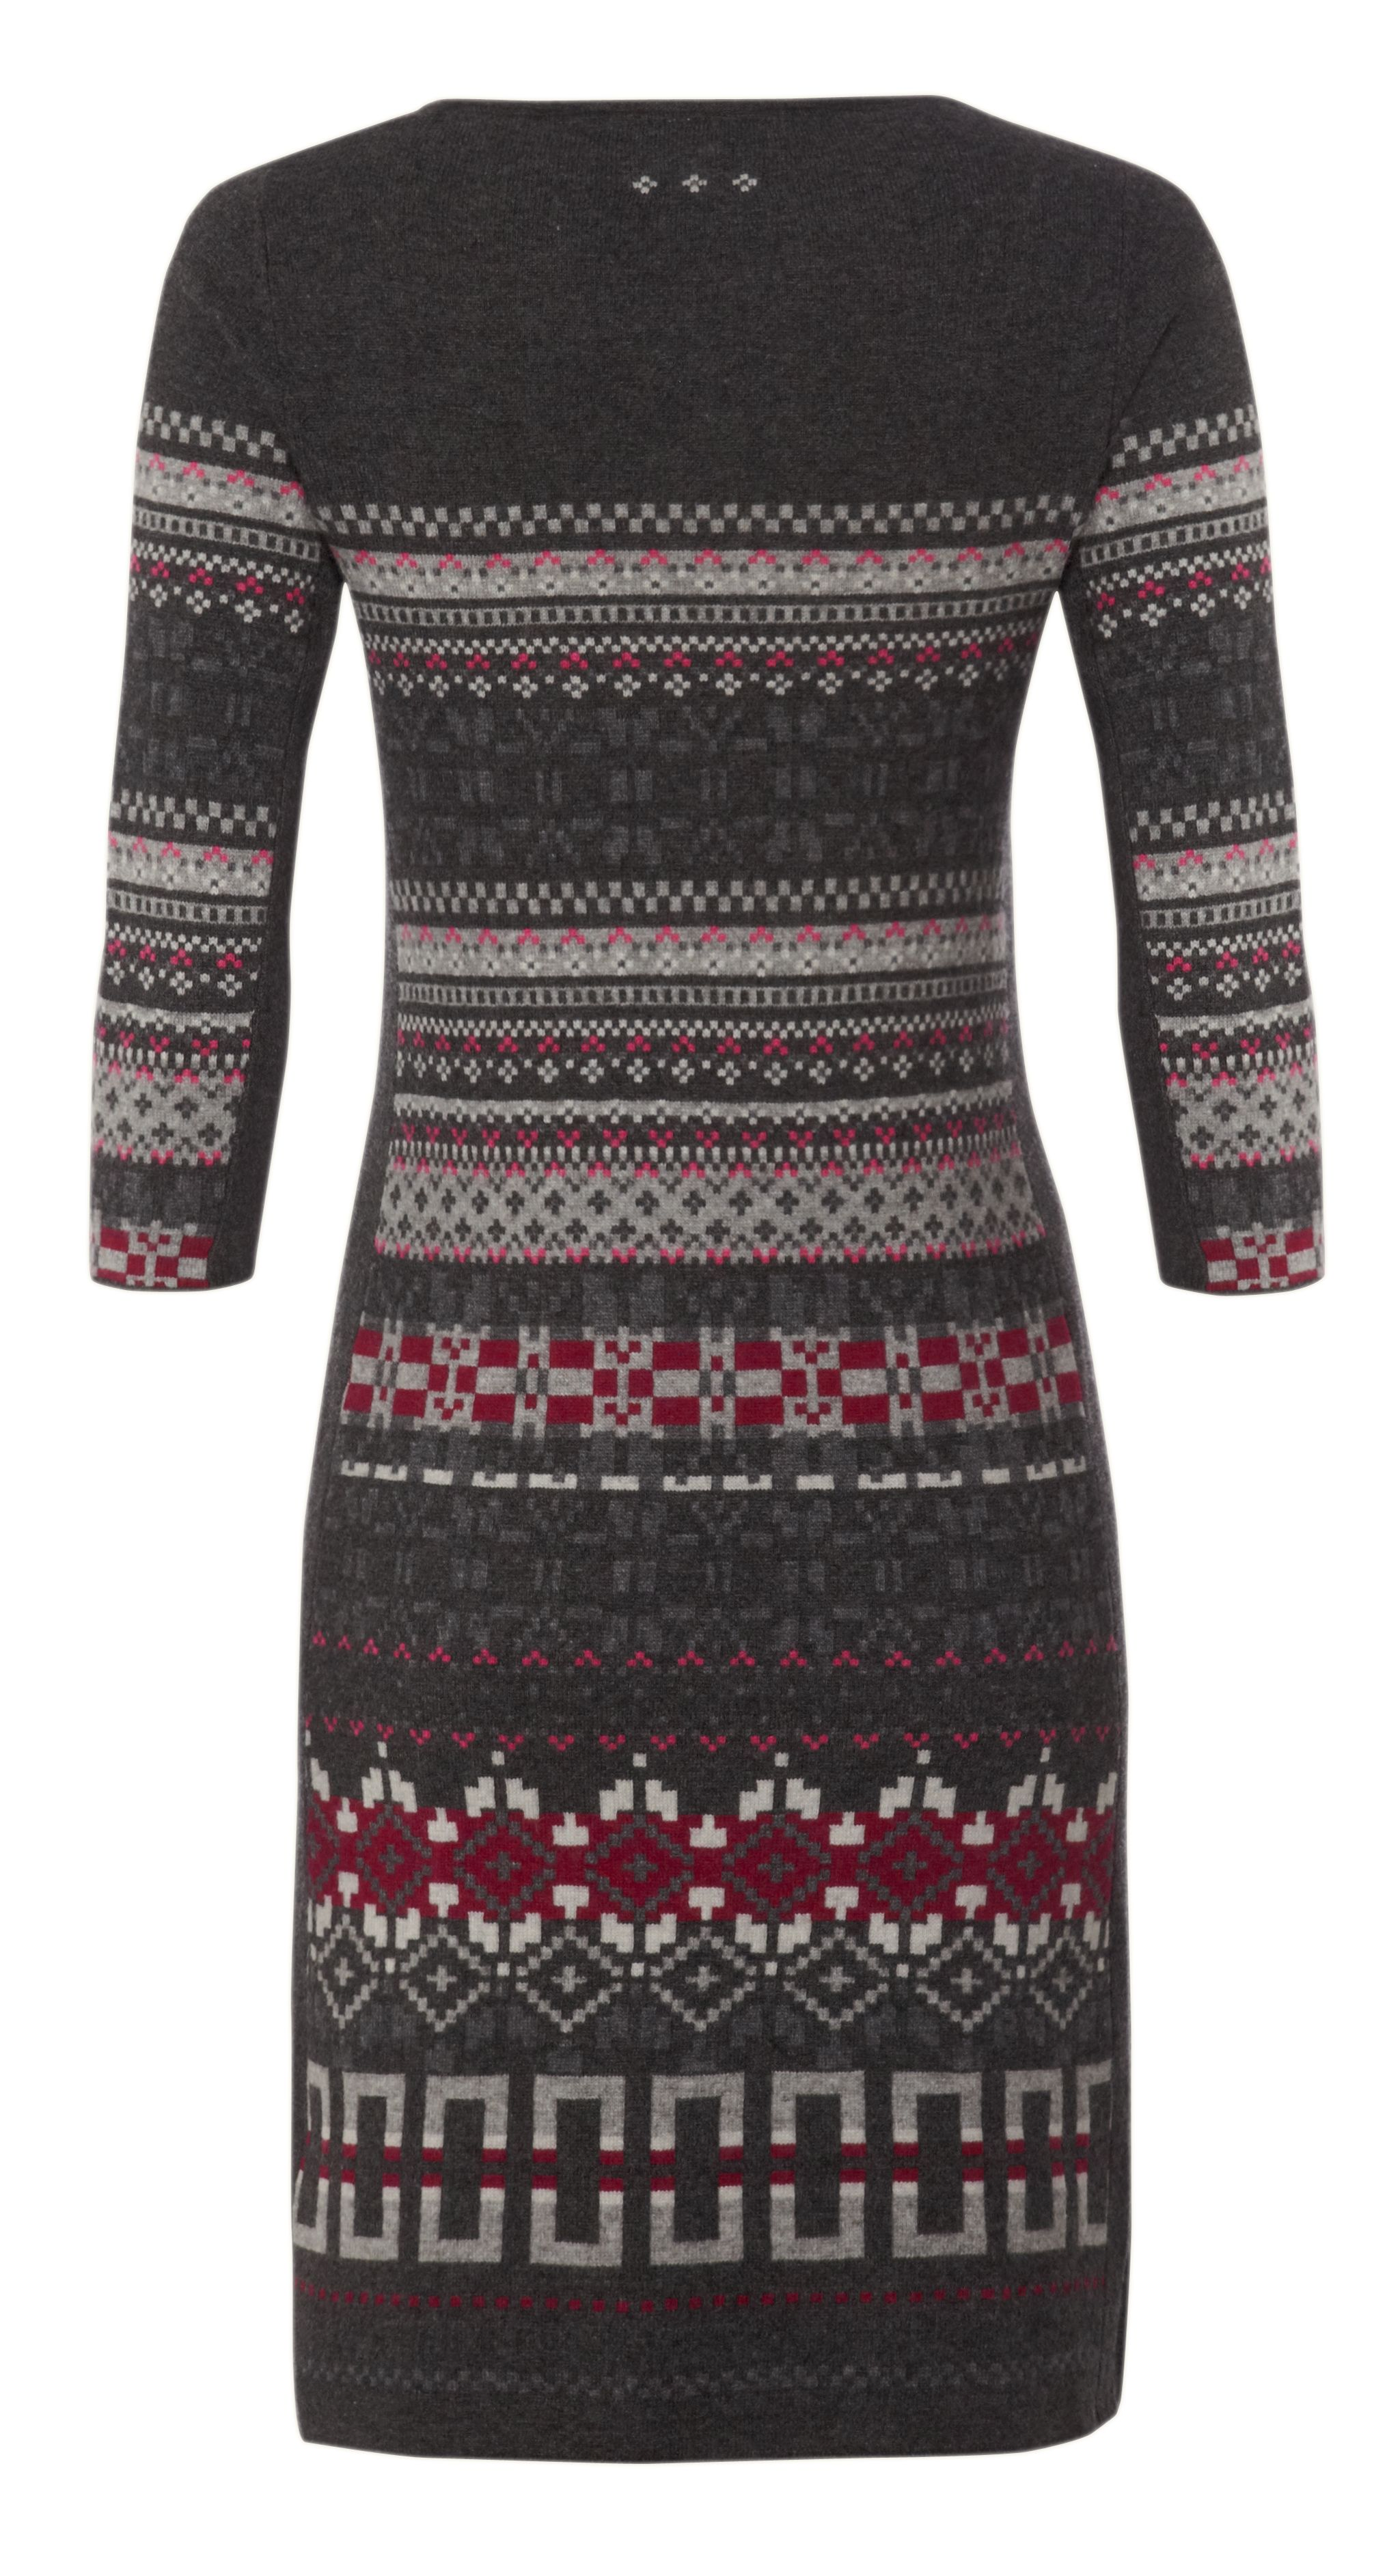 Chagal knit dress